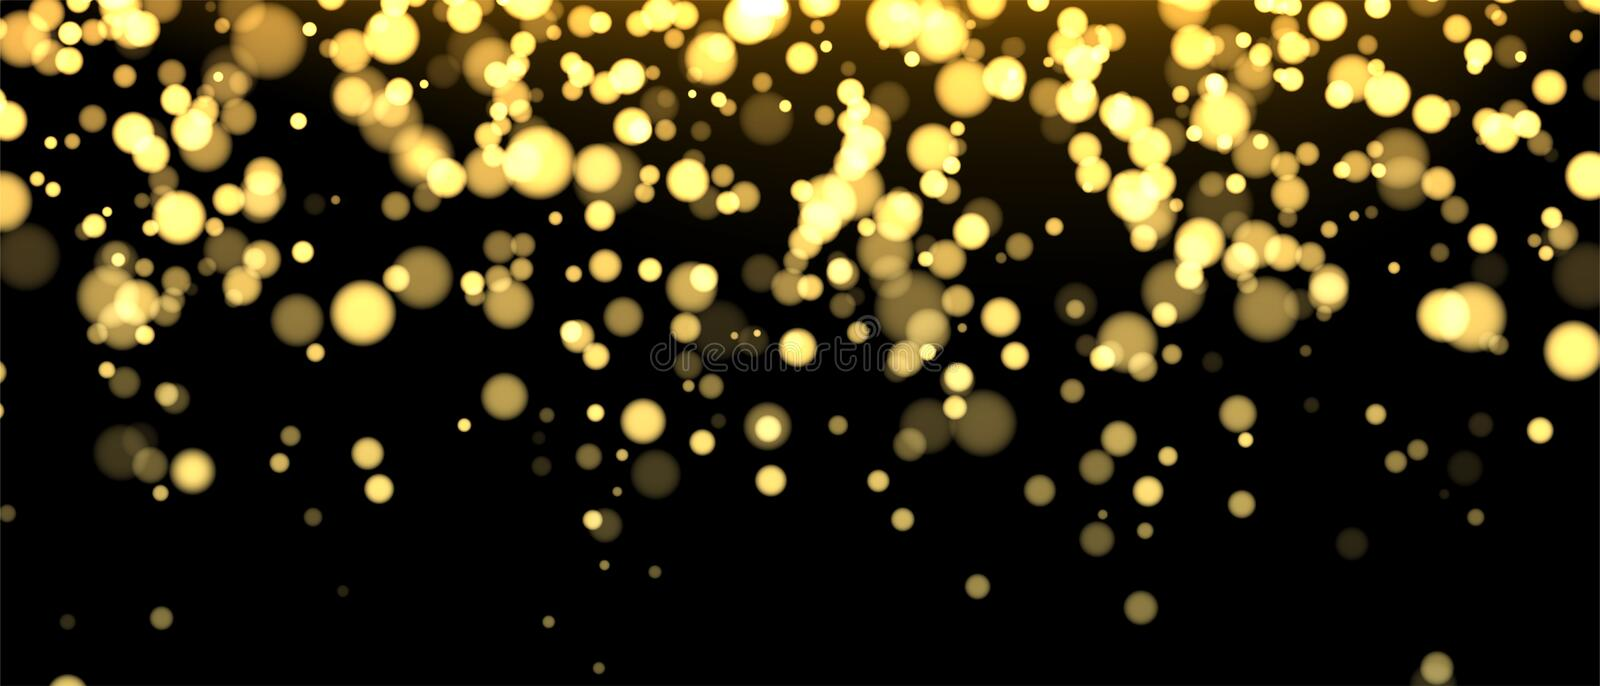 Gold blurred banner on black background. Glittering falling confetti backdrop. Golden shimmer texture for luxury design vector illustration